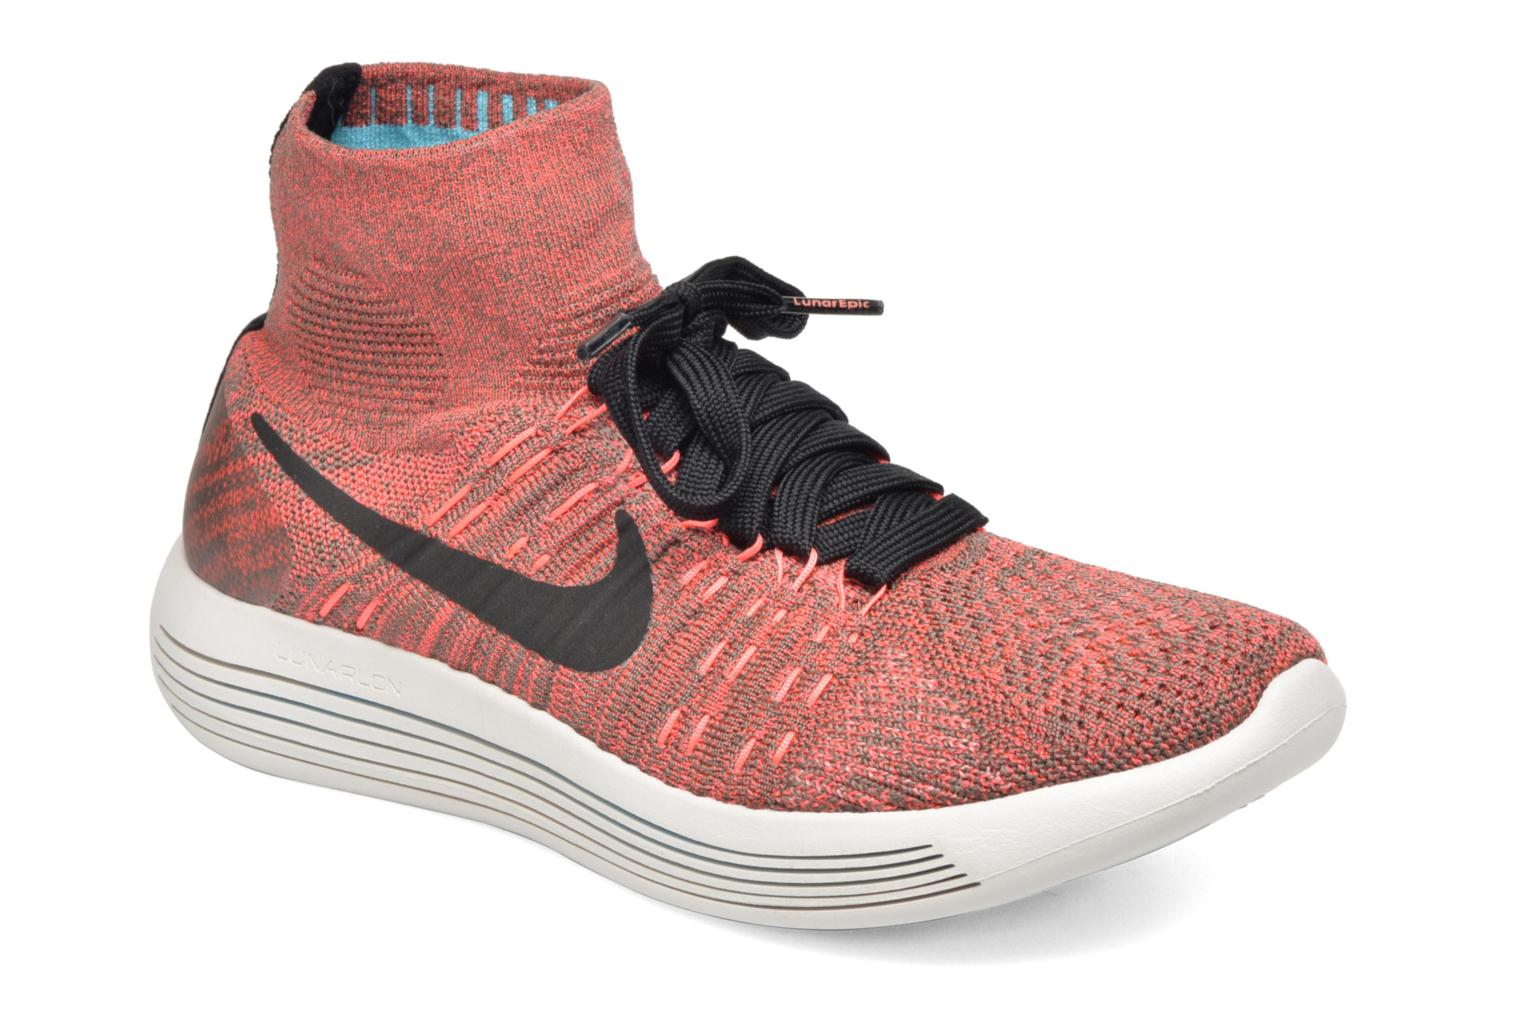 Lunarepic Black Glow Flyknit Dark Lava Mushroom Punch Nike Hot Nike Wmns SEq44a